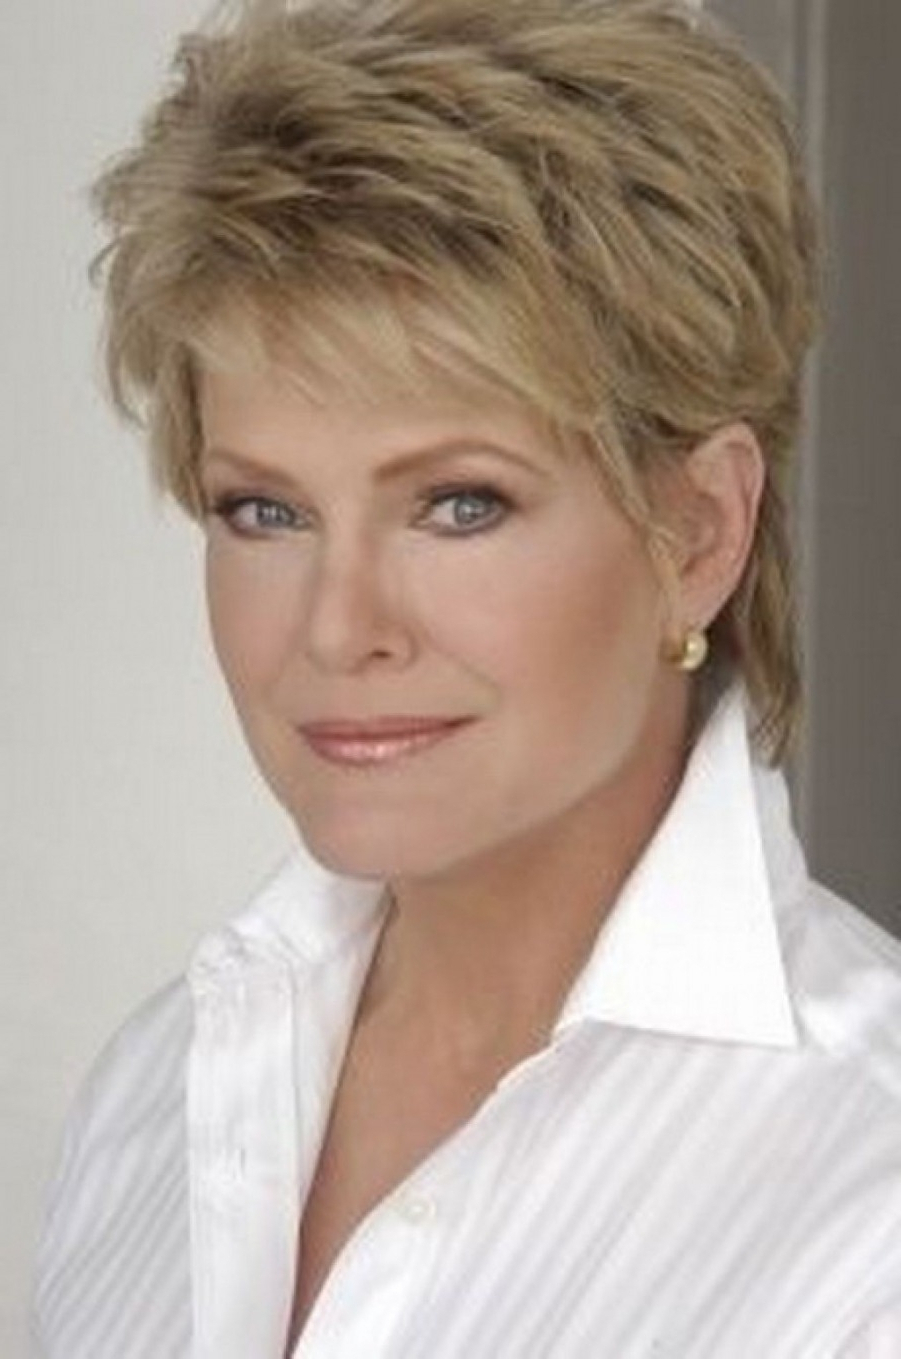 10+ Coolest Short Haircuts Women Over 50 With Picture | Hairstyles Regarding Short Hairstyles For Ladies Over  (View 13 of 25)